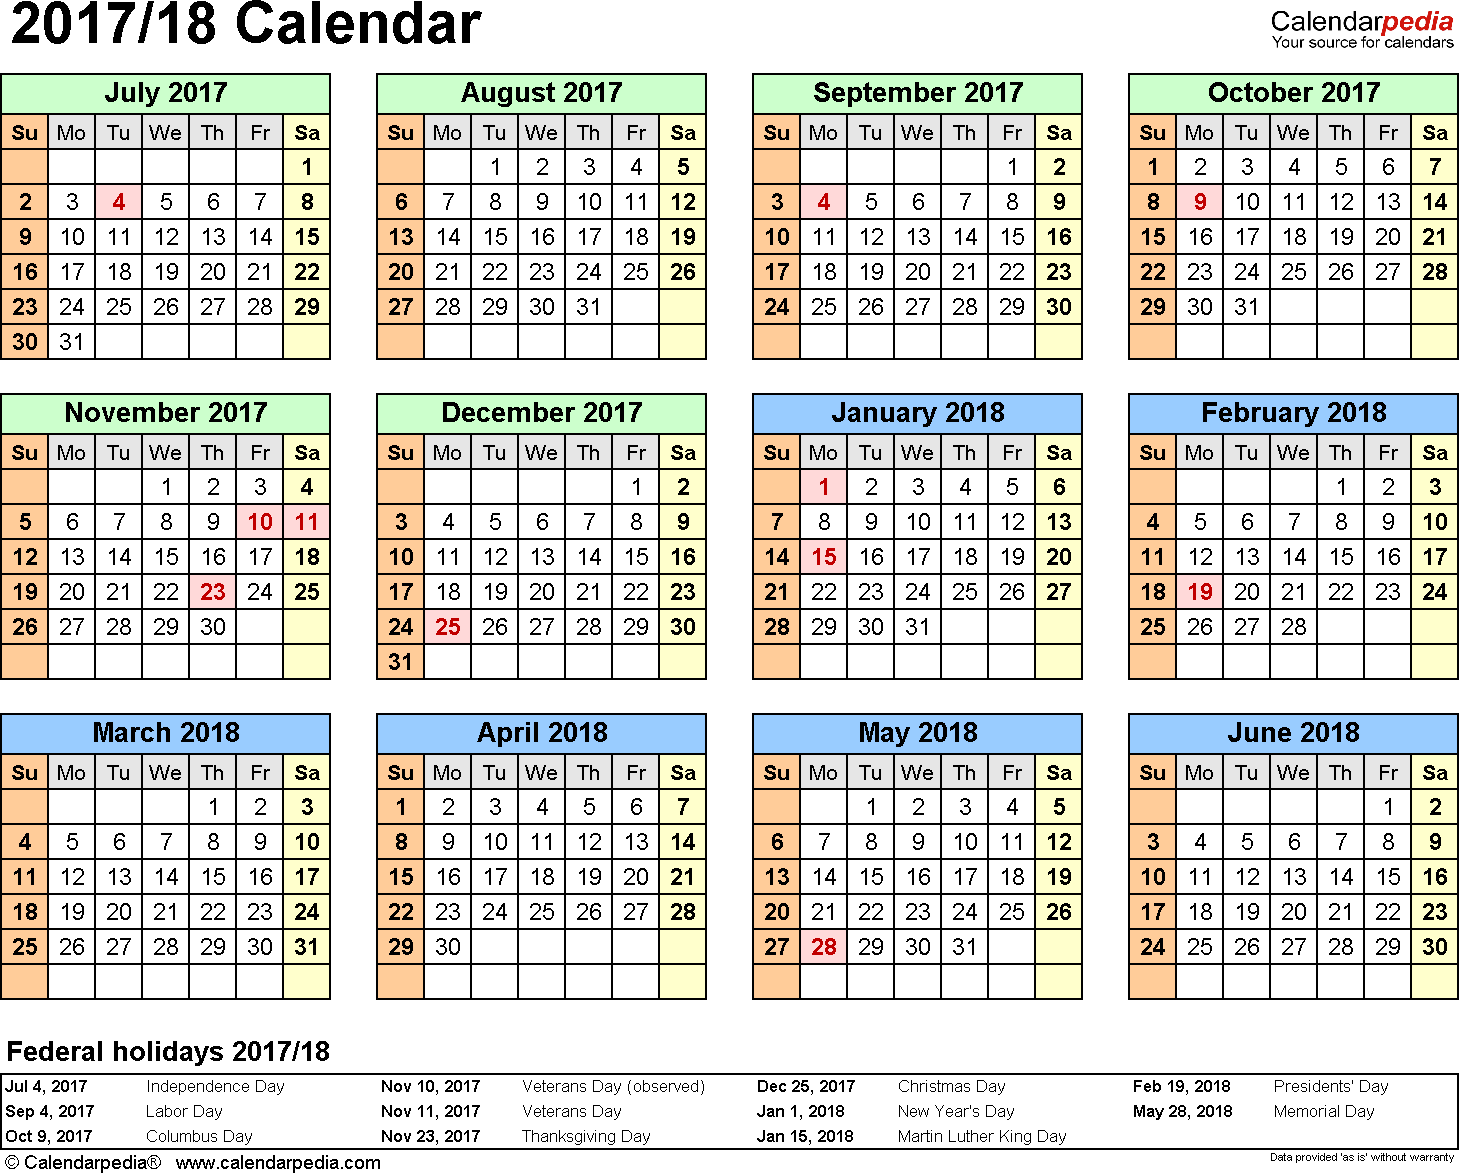 Split year calendar 2017/18 - printable PDF templates